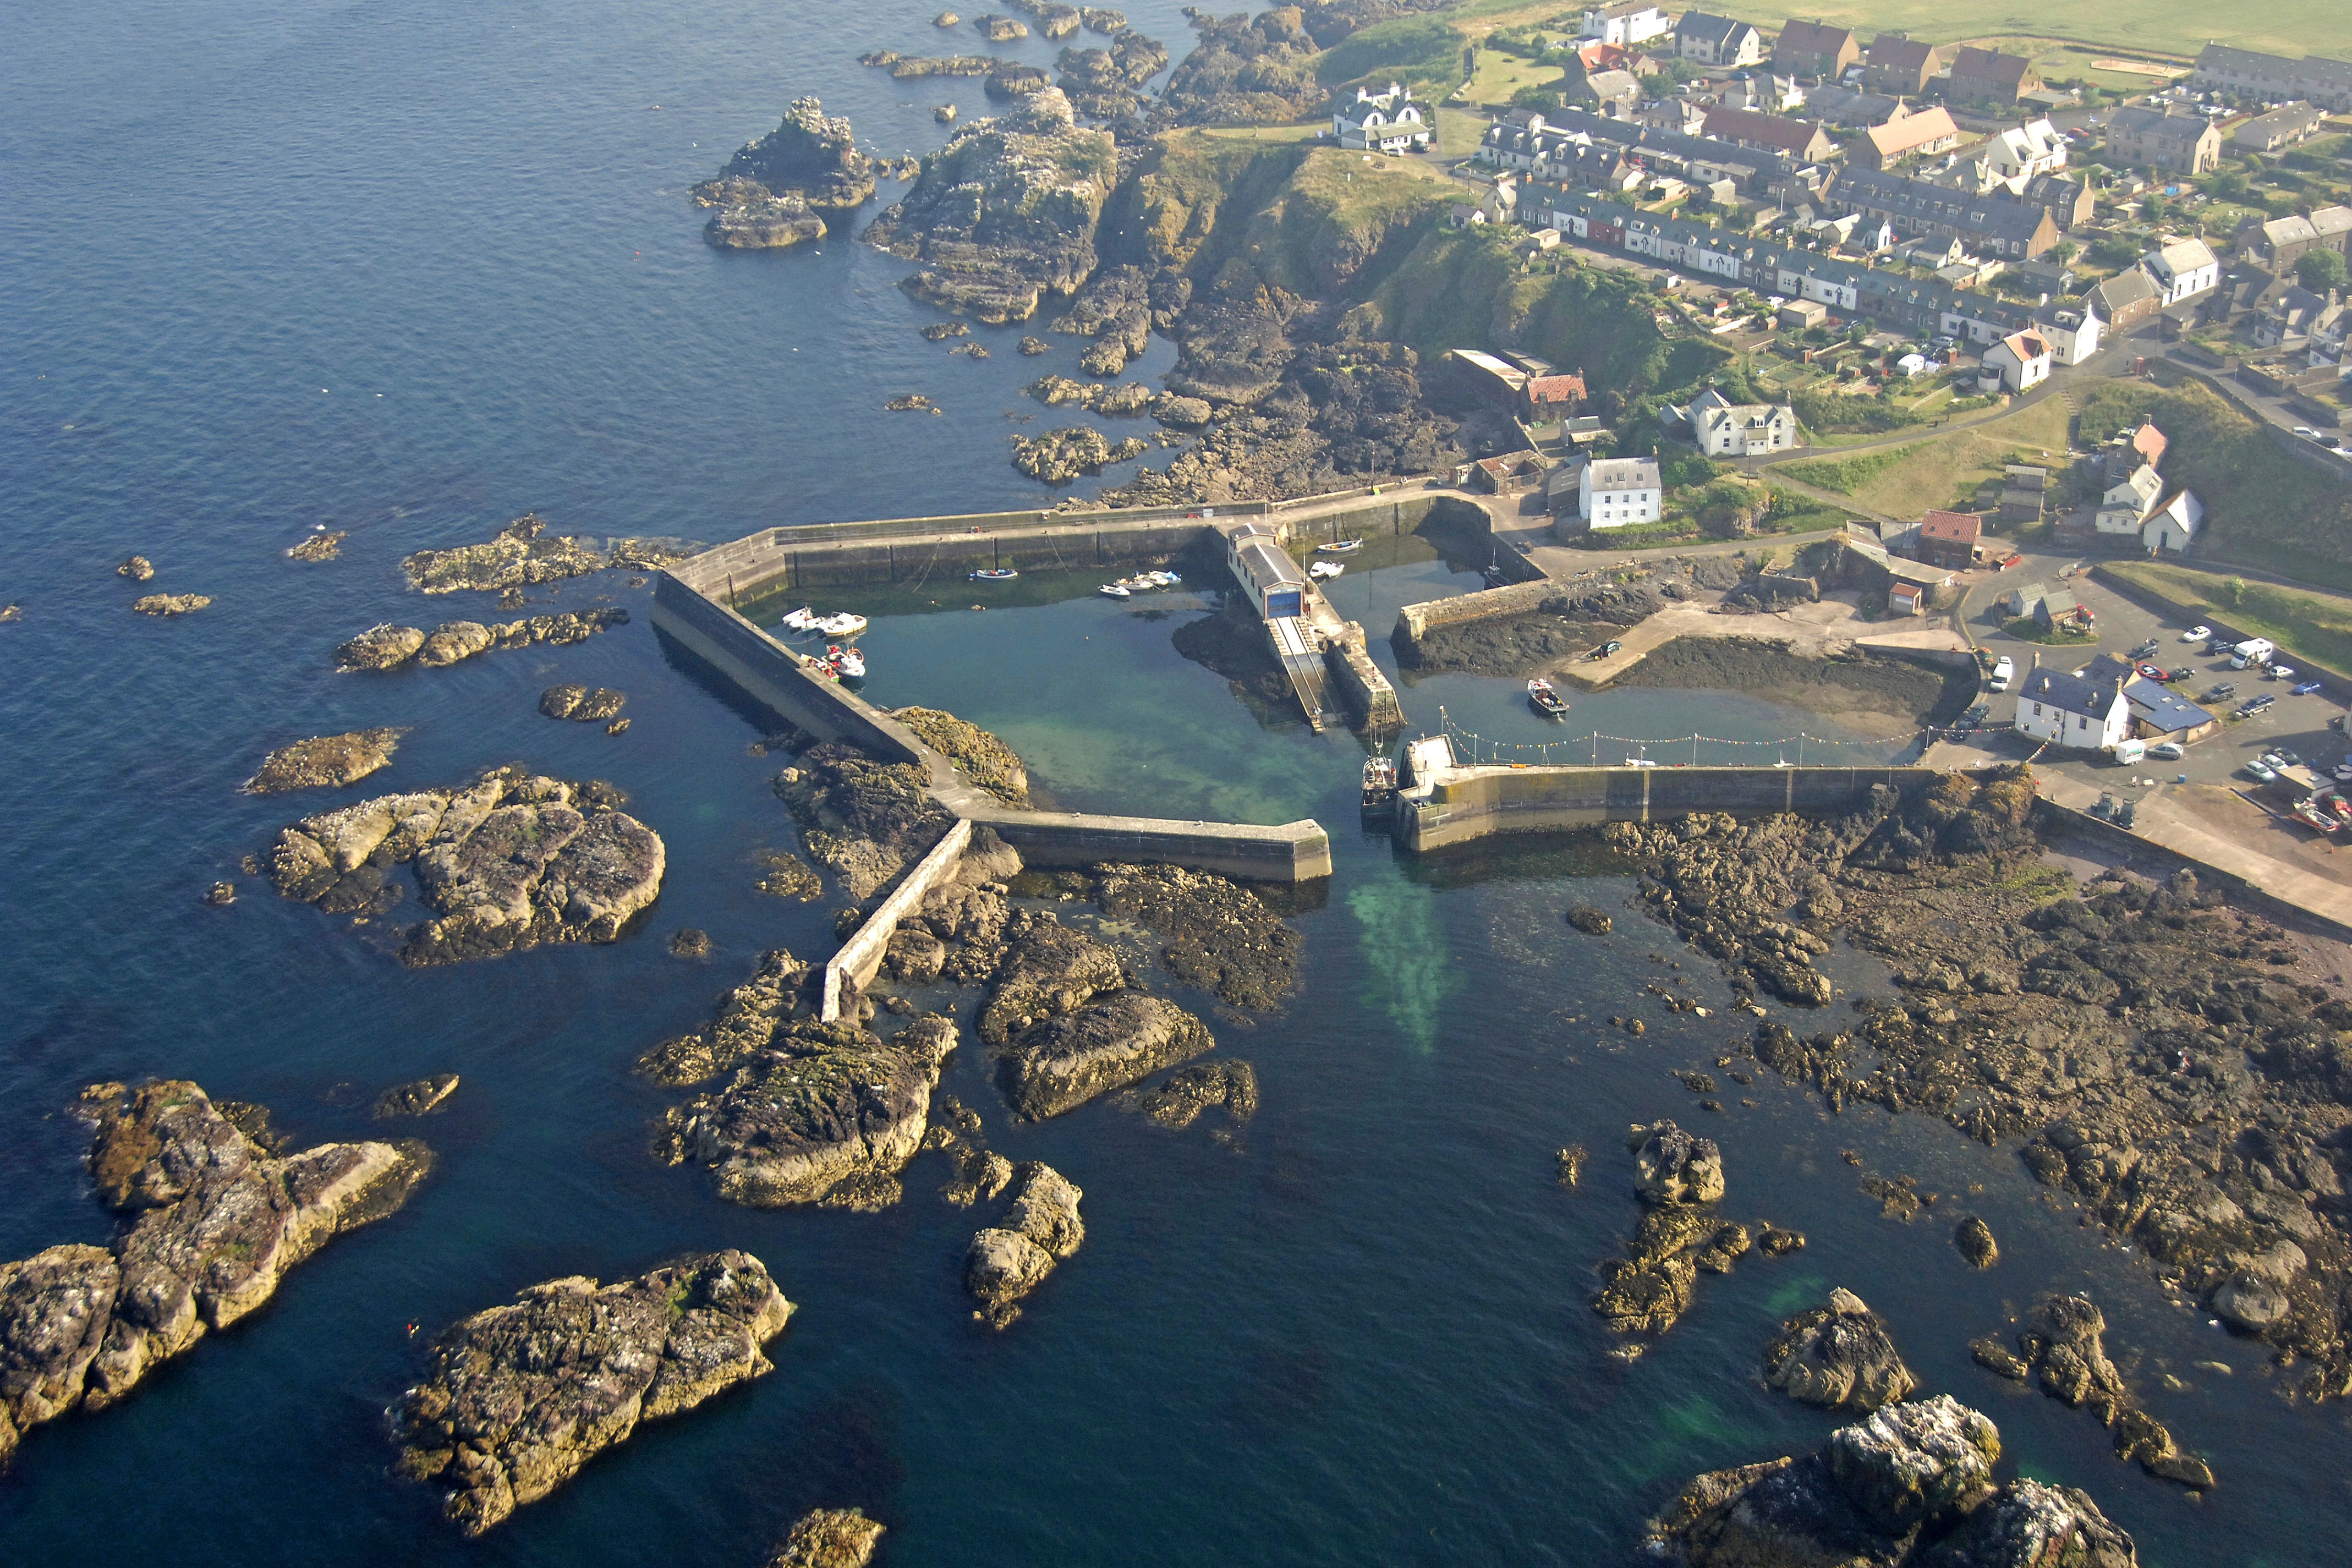 Aerial of St. Abbs Harbour